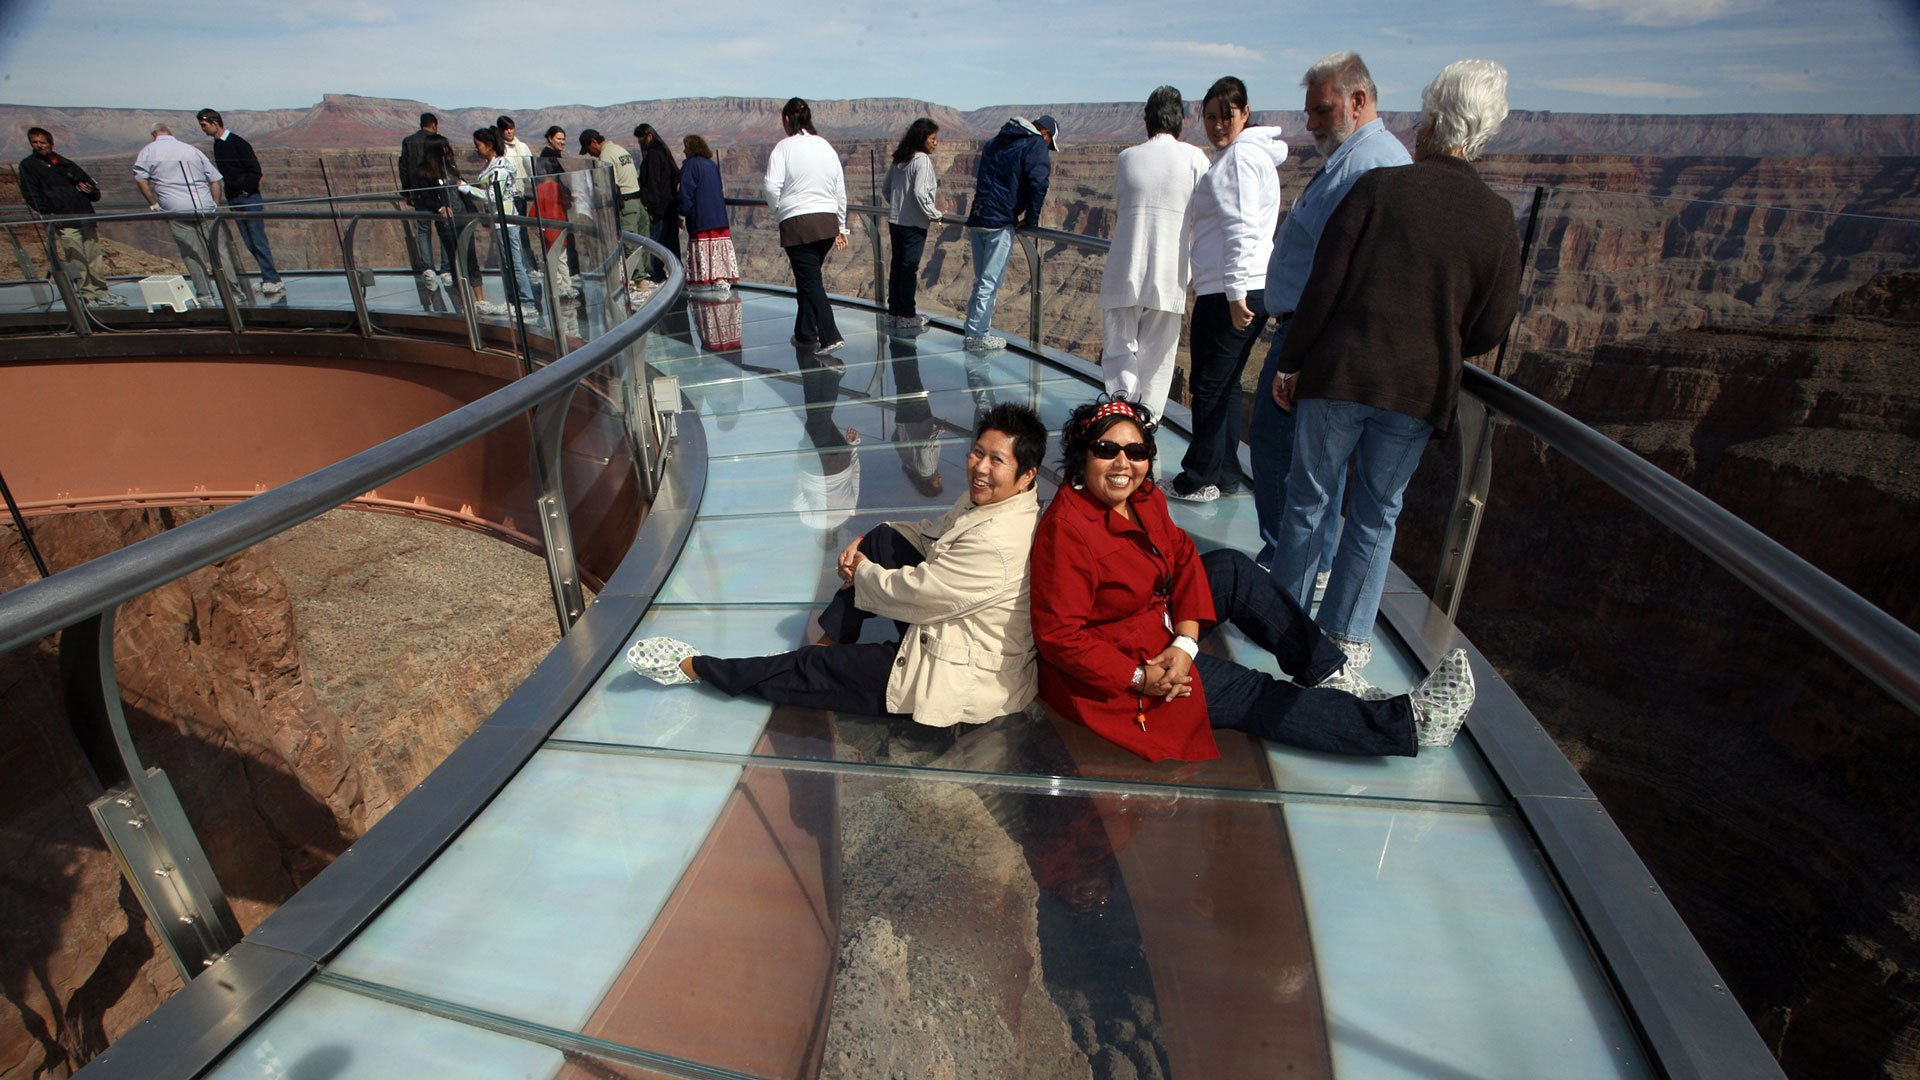 Two women sitting on the glass floor of the Skywalk posing for a photo.